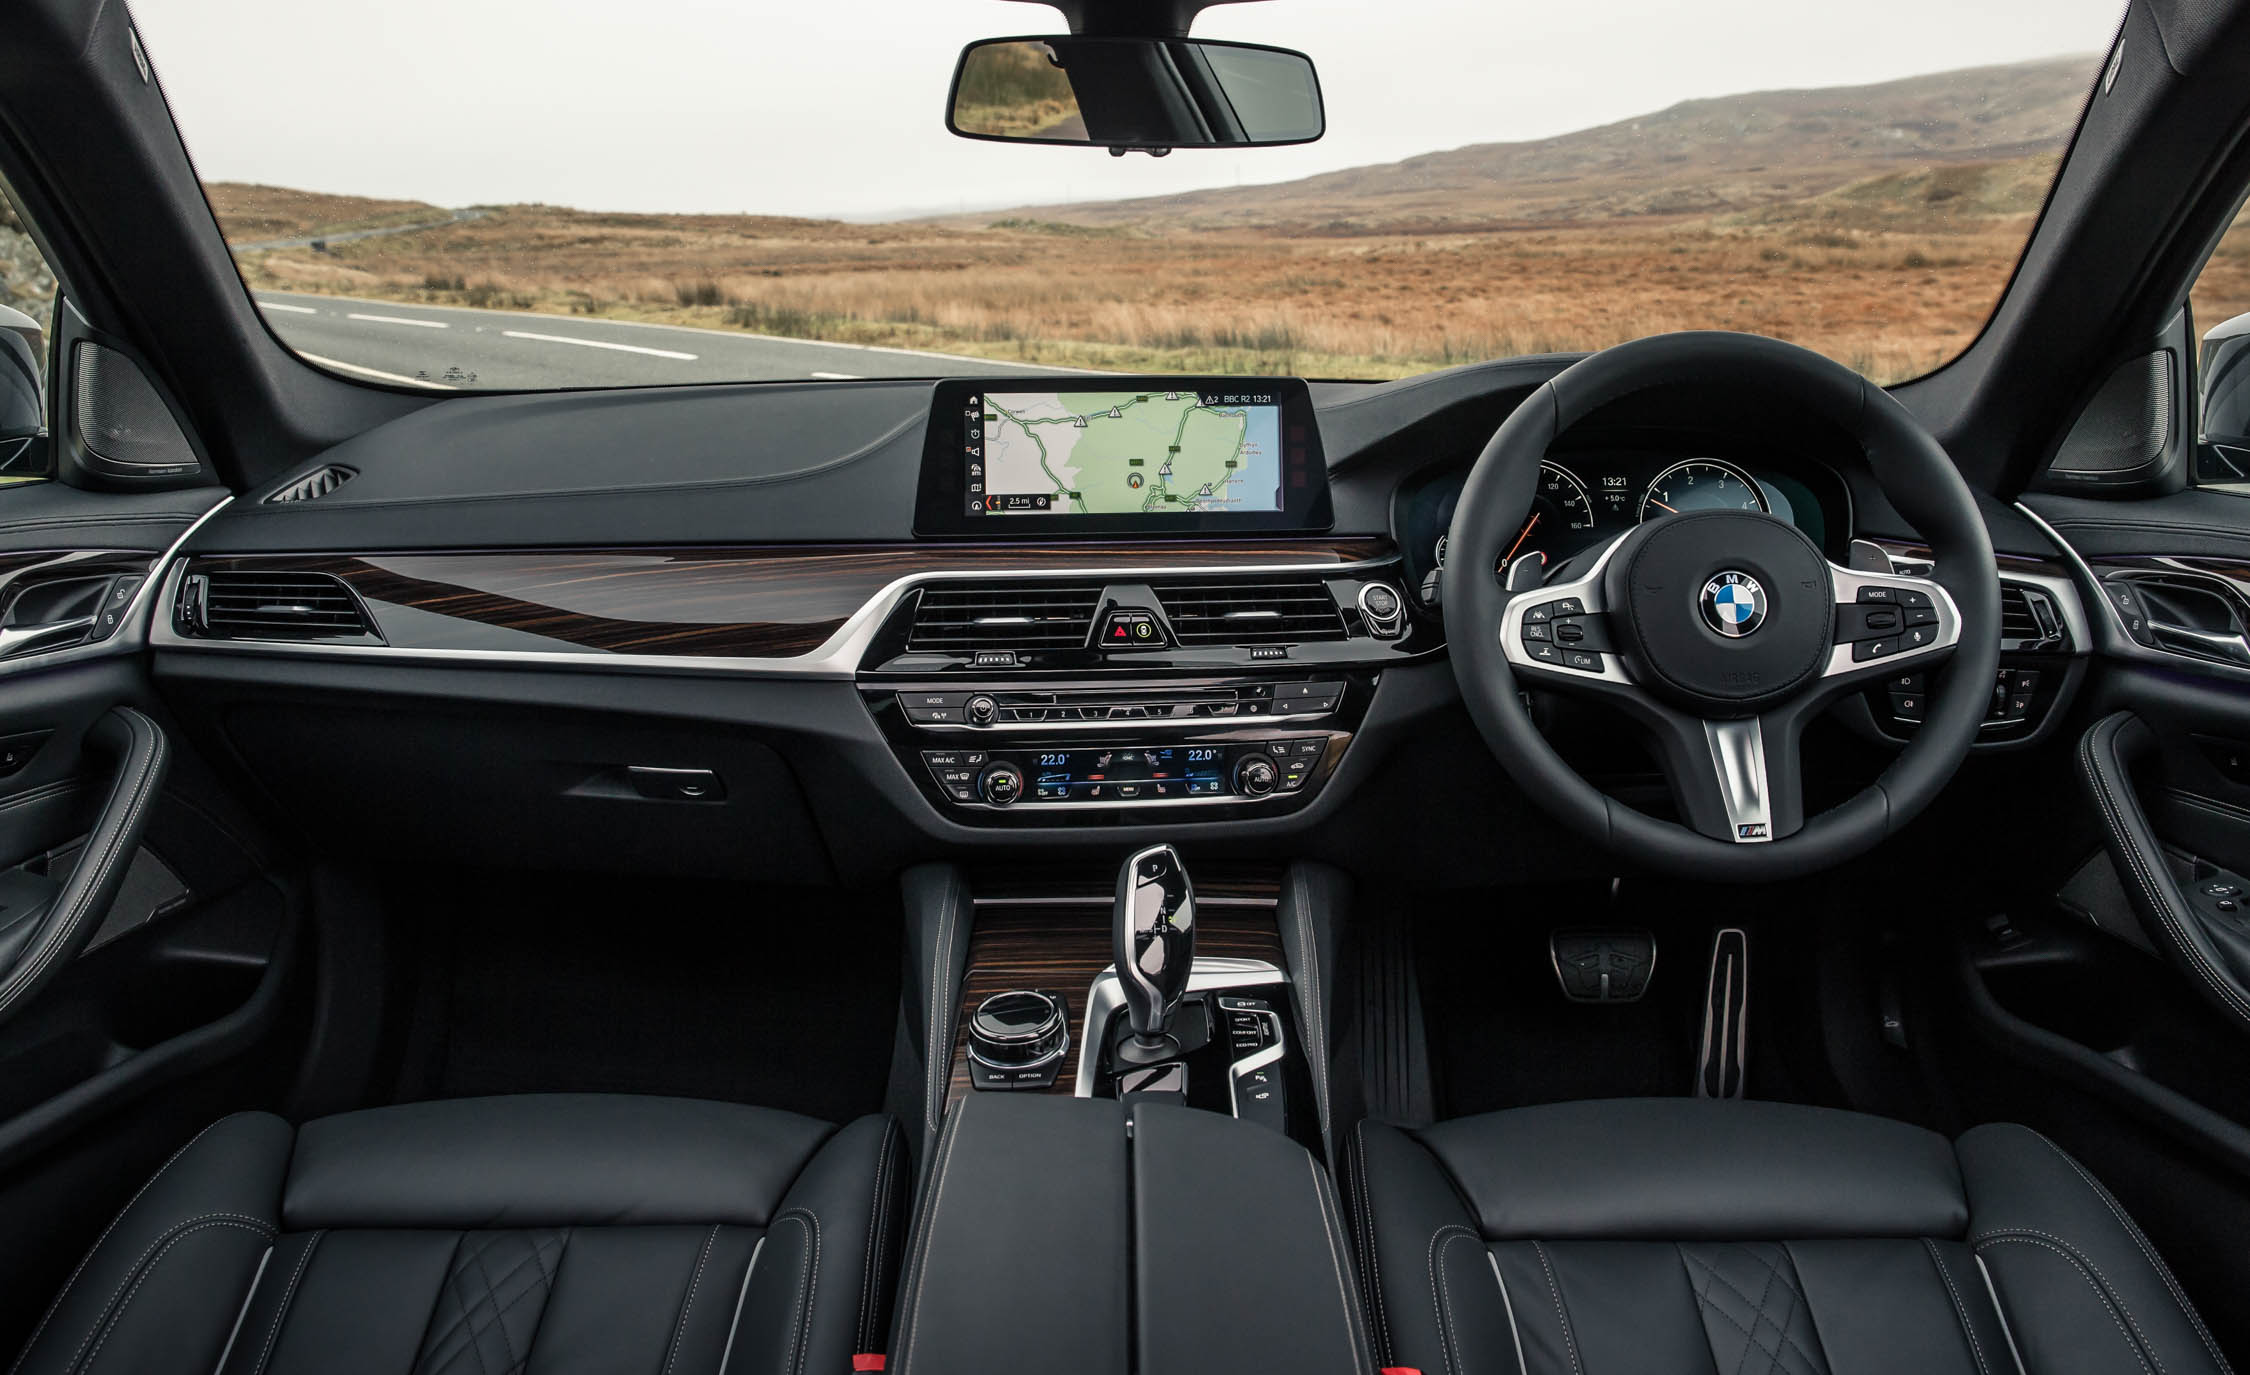 2017 BMW 530d Interior Dashboard (View 30 of 32)